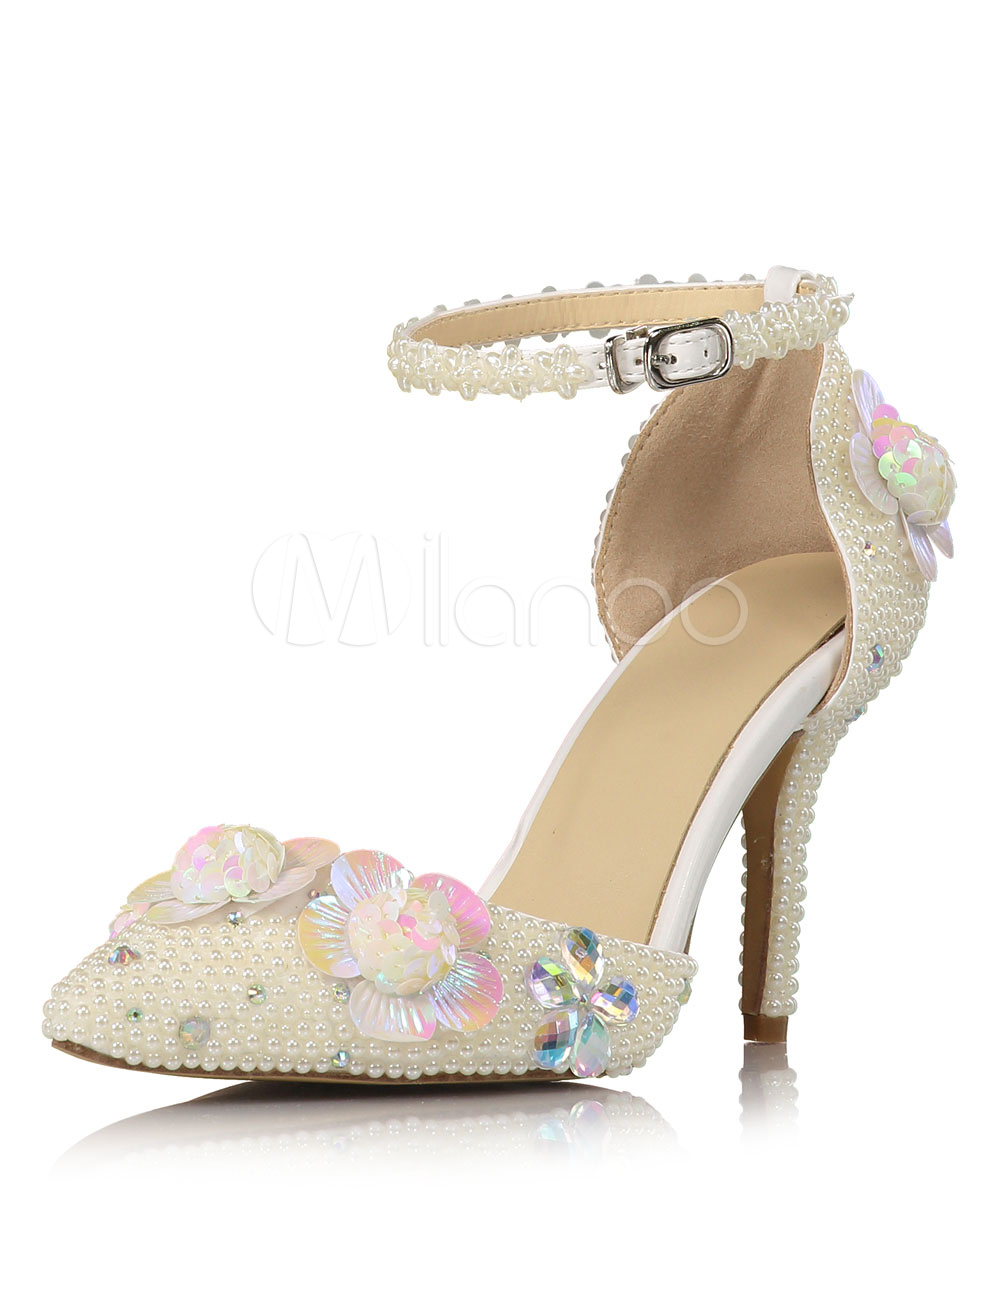 Buy Ivory Wedding Shoes High Heel Pearls Flowers Beaded Ankle Strap Bridal Shoes for $80.99 in Milanoo store